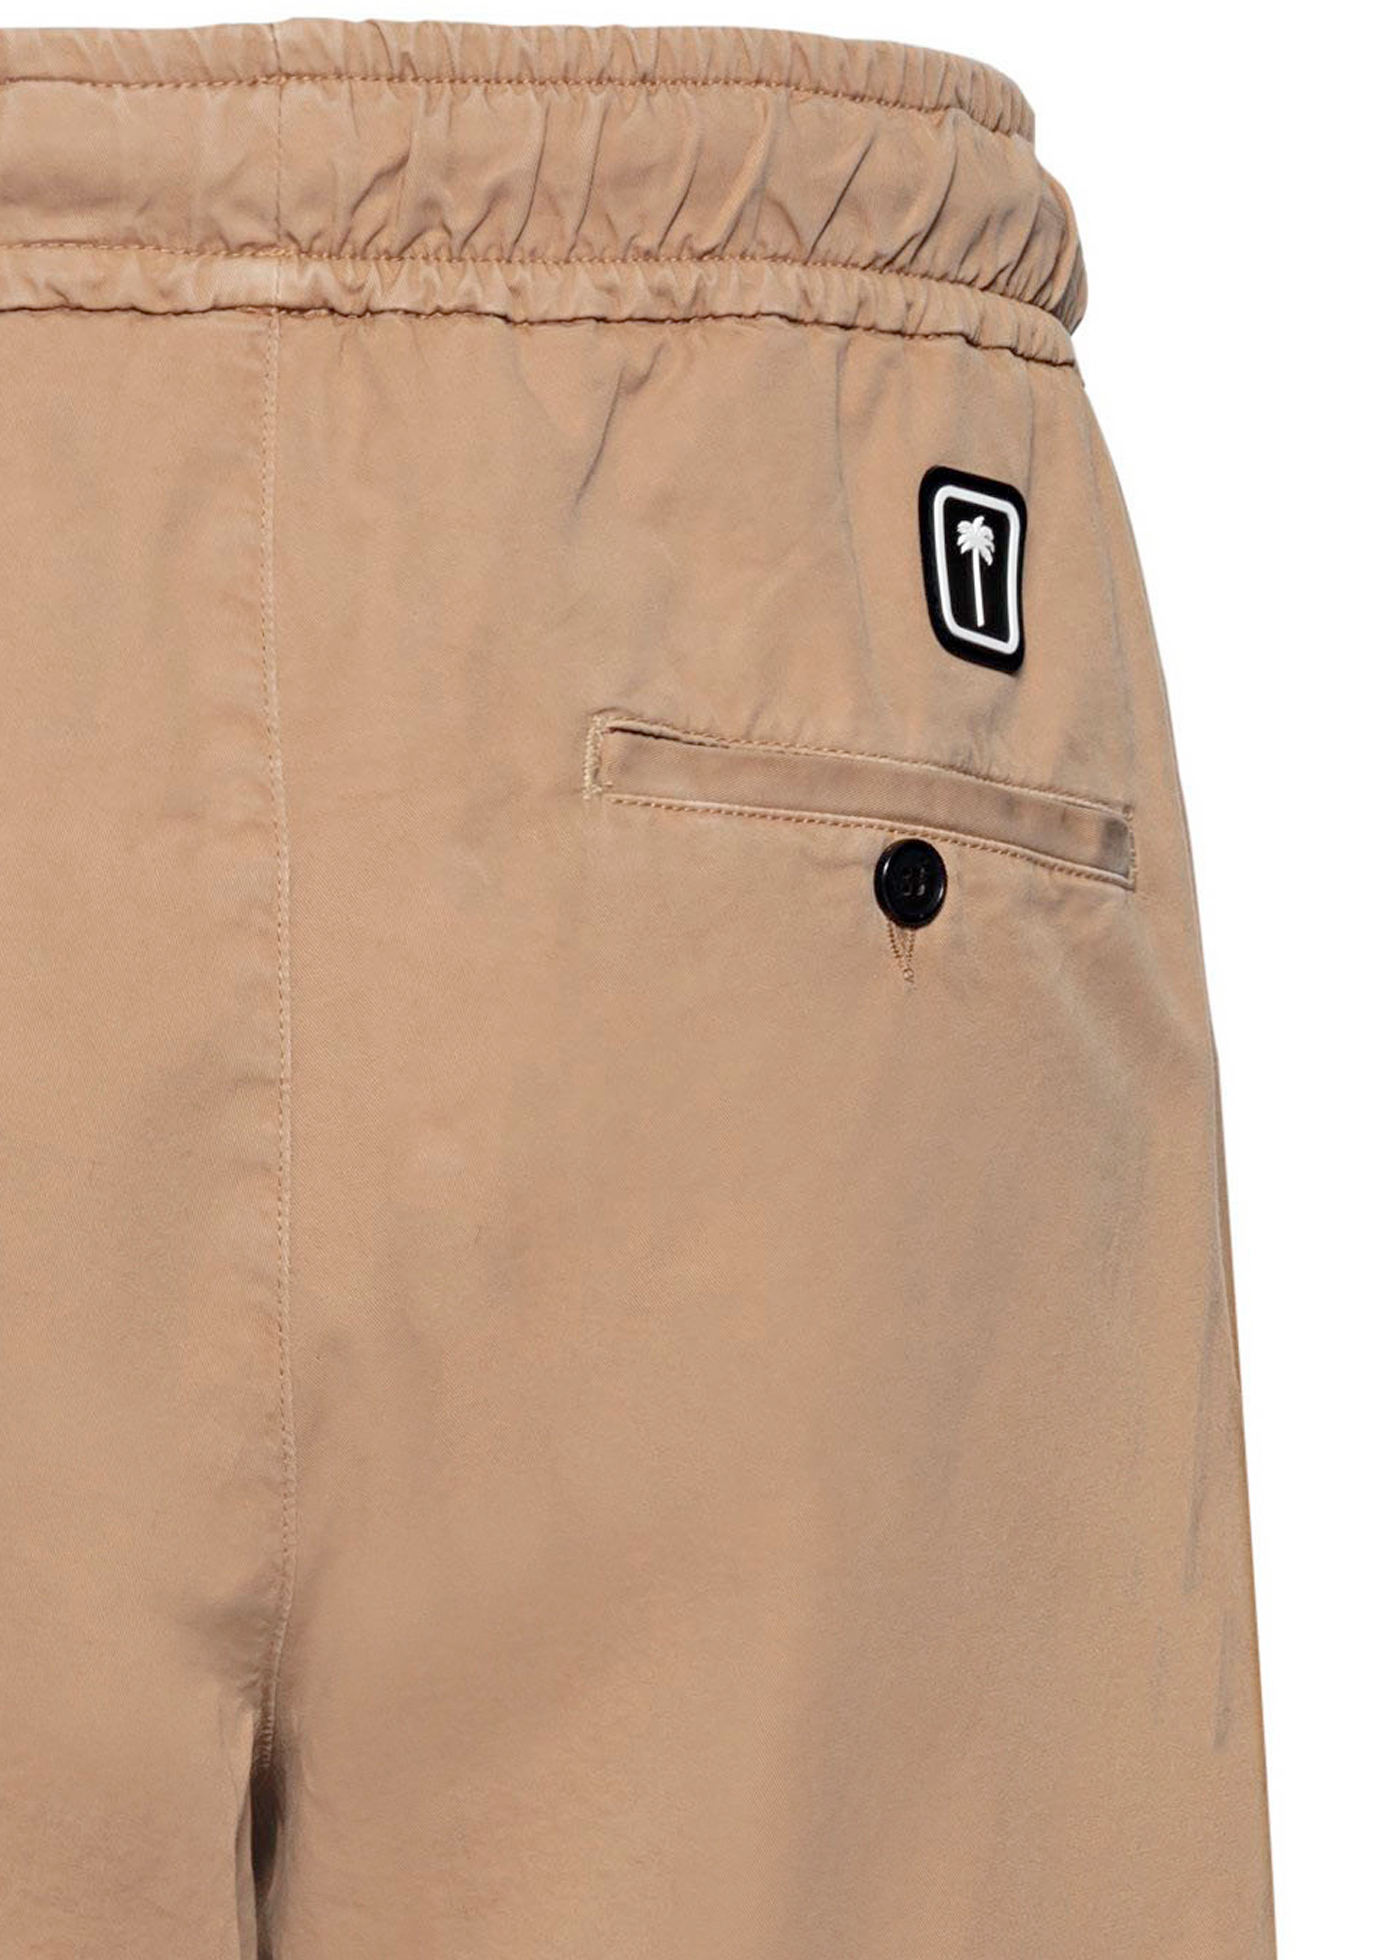 PXP WASHED PALM CHINOS image number 3